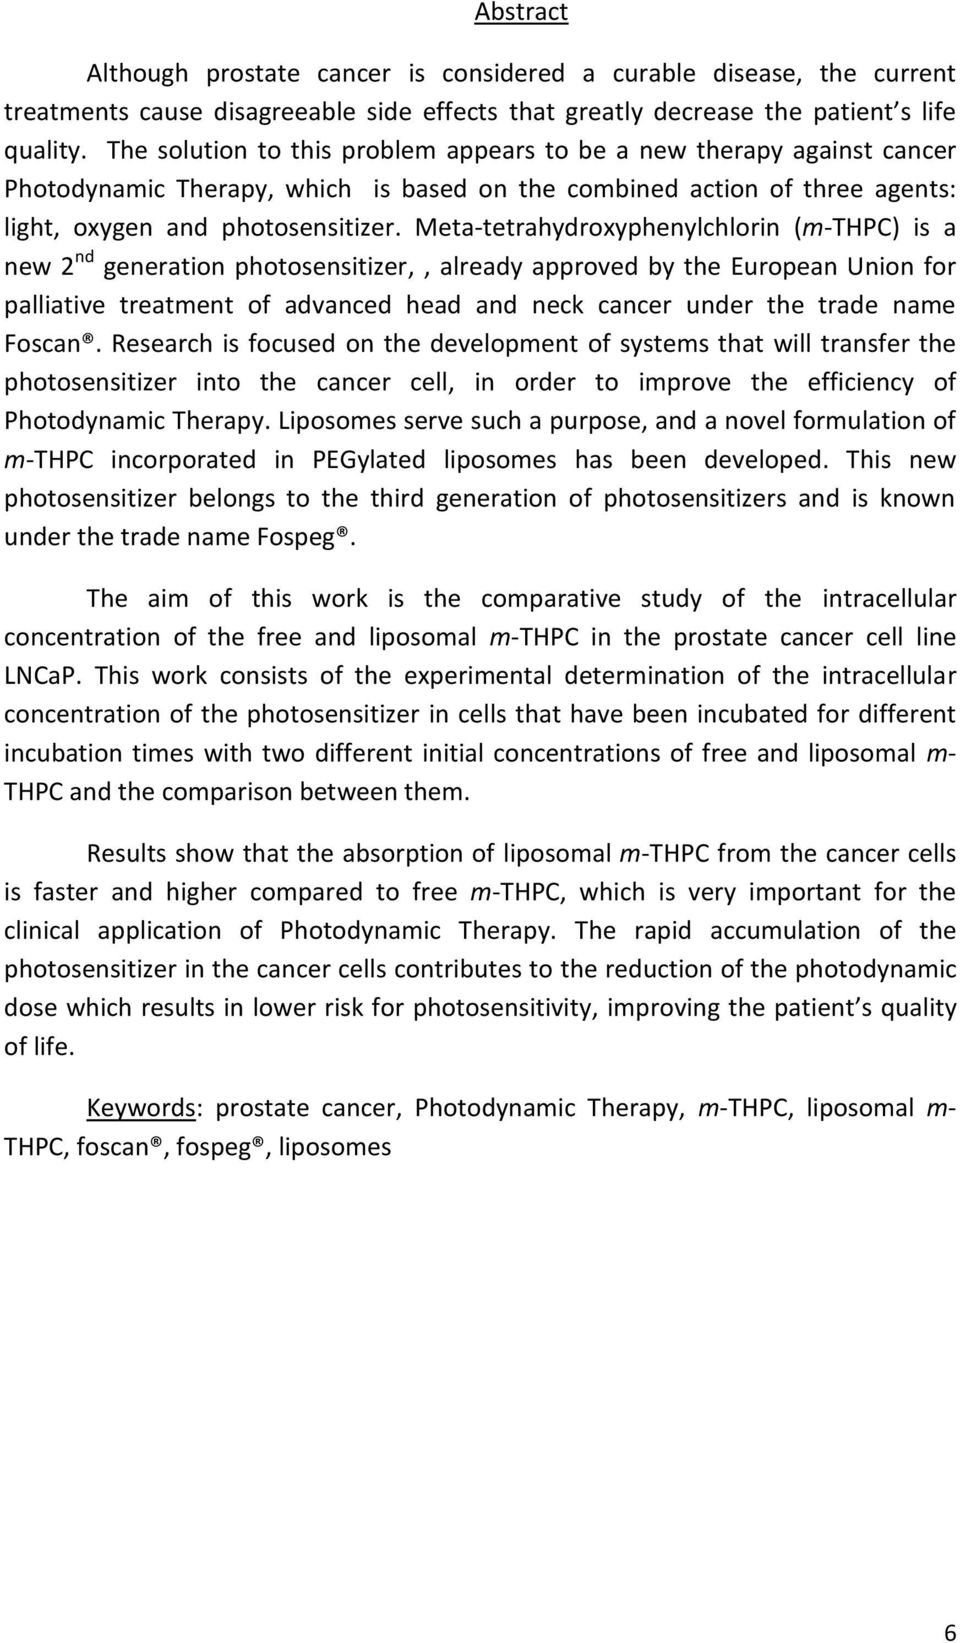 Meta-tetrahydroxyphenylchlorin (m-thpc) is a new 2 nd generation photosensitizer,, already approved by the European Union for palliative treatment of advanced head and neck cancer under the trade